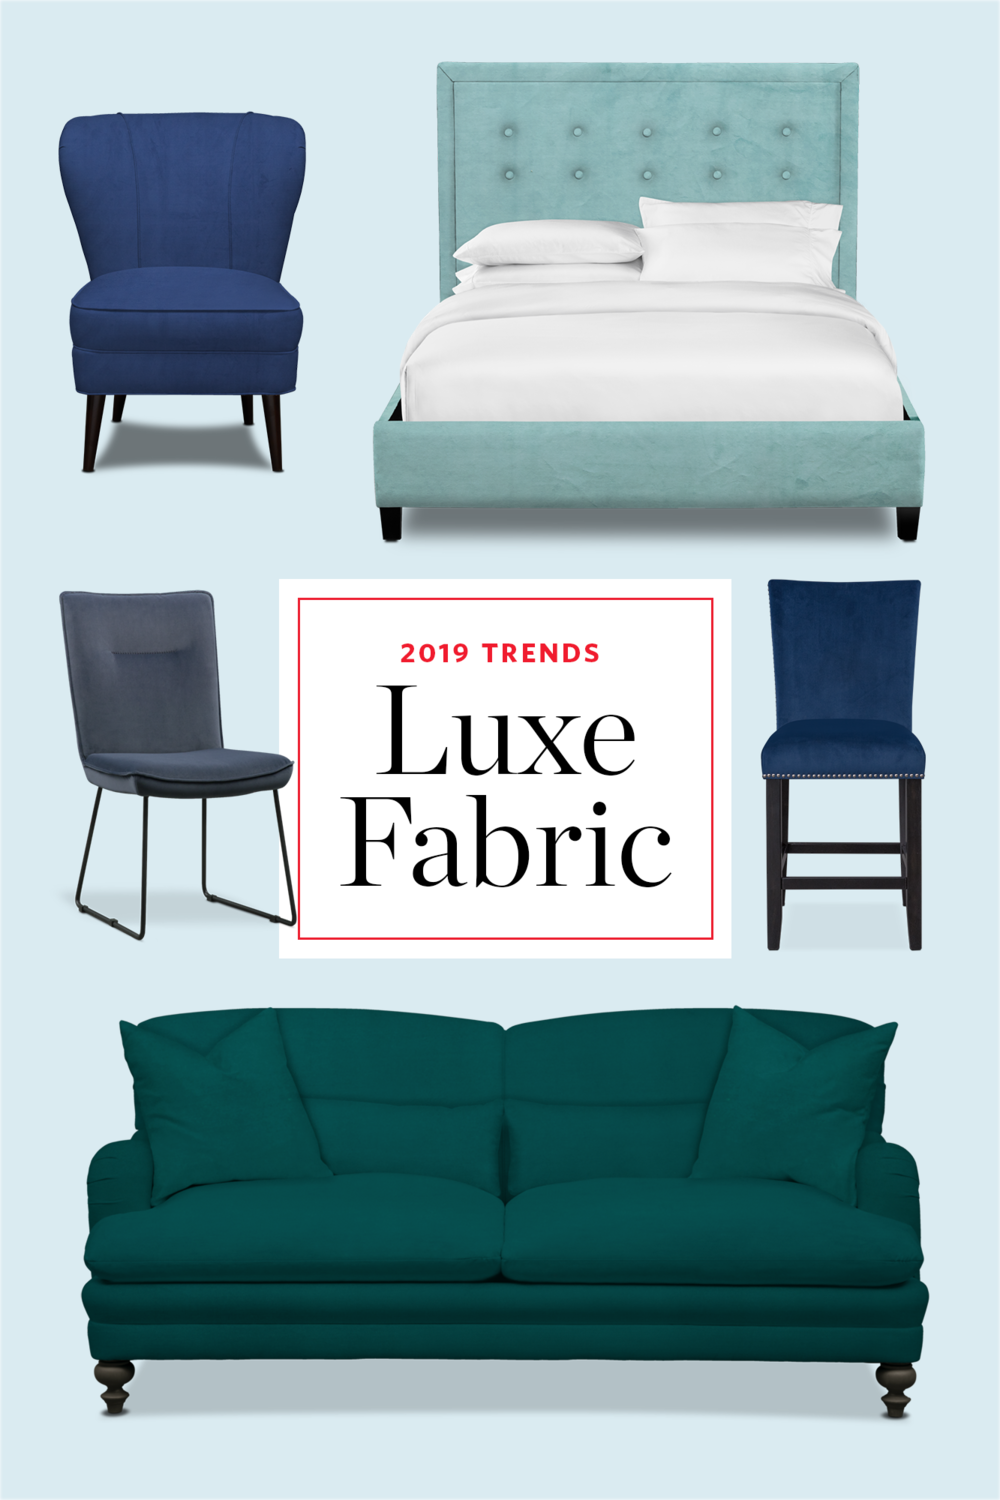 decor trends - luxe fabric